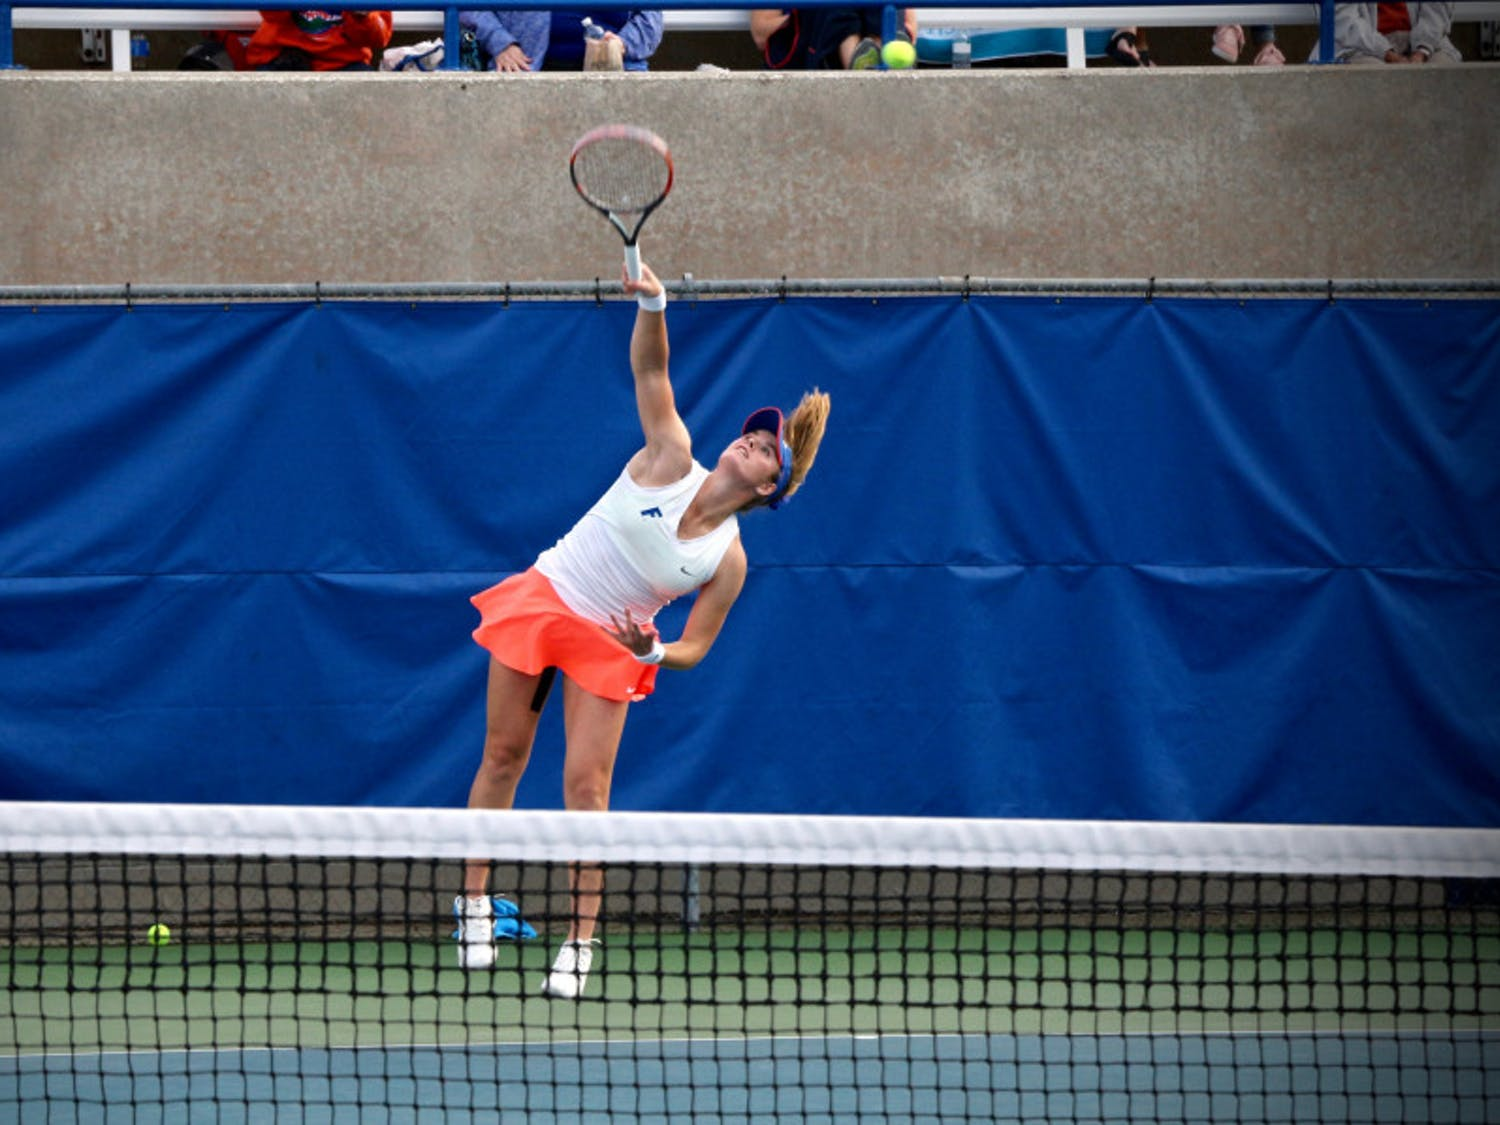 Belinda Woolcock serves during Florida's 4-2 win against Oklahoma State on Feb. 18, 2017, at the Ring Tennis Complex.